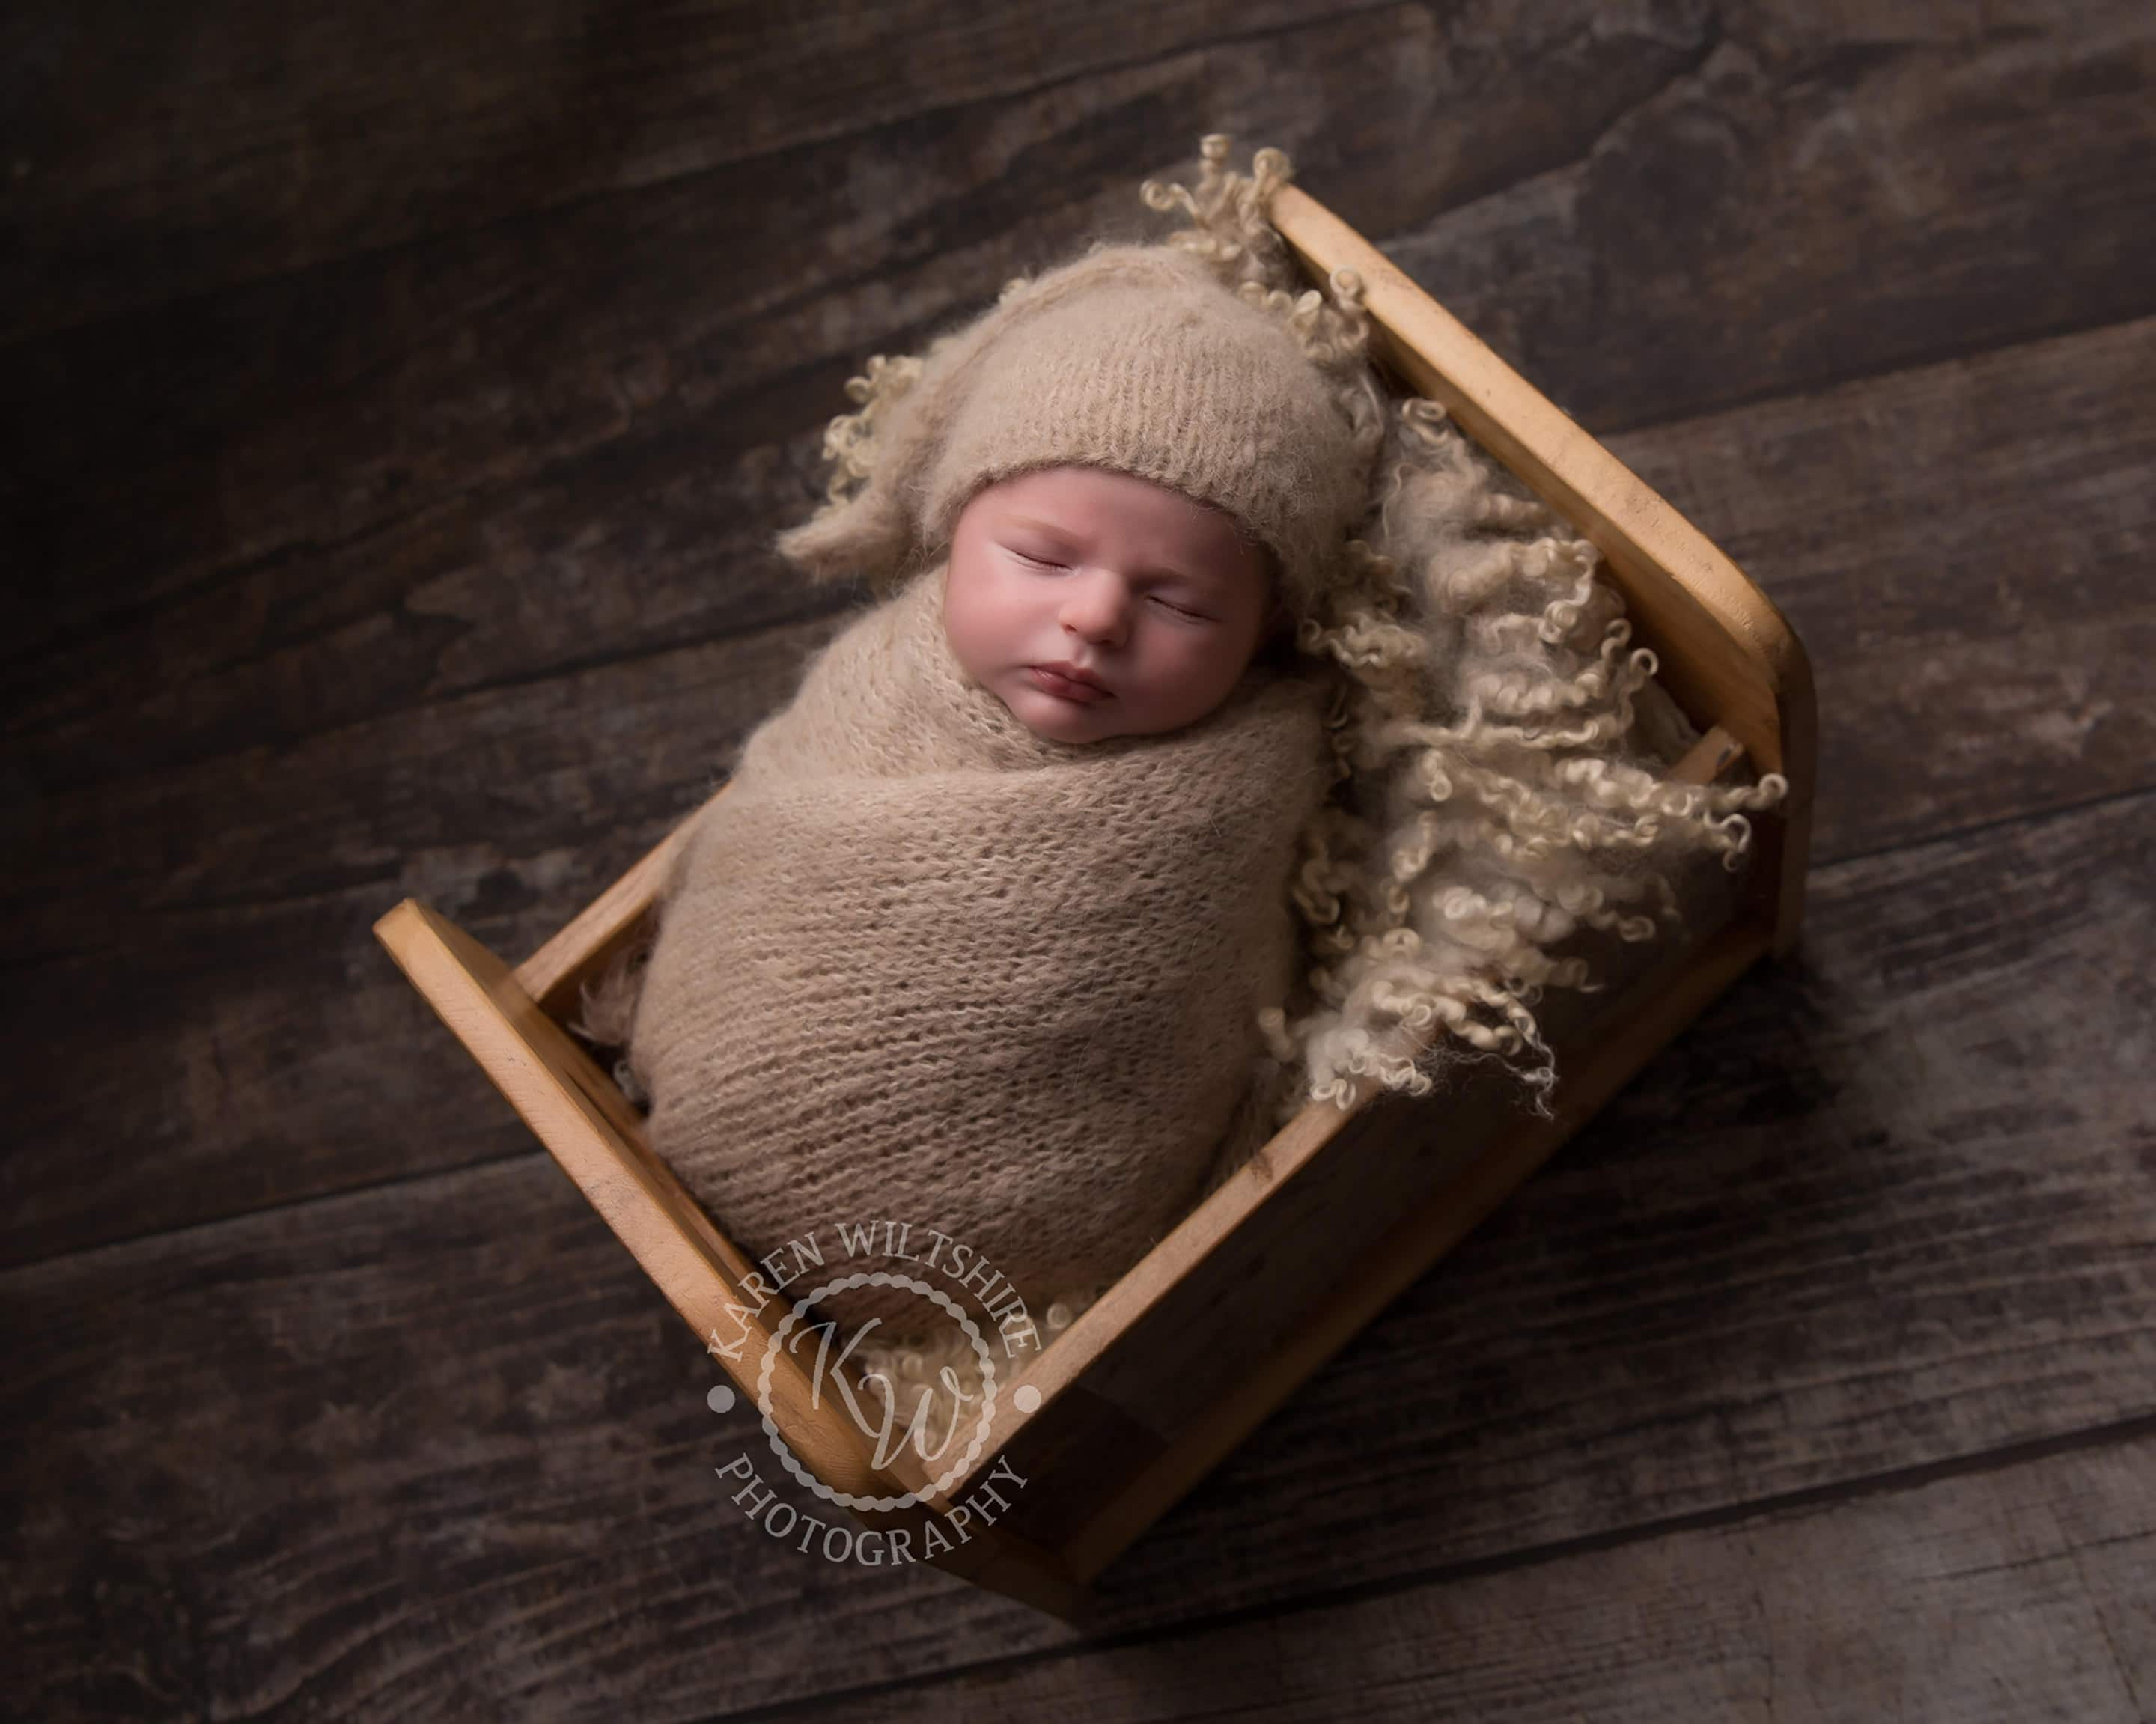 Baby boy in neutral brown wrap and hat in a small wooden bed